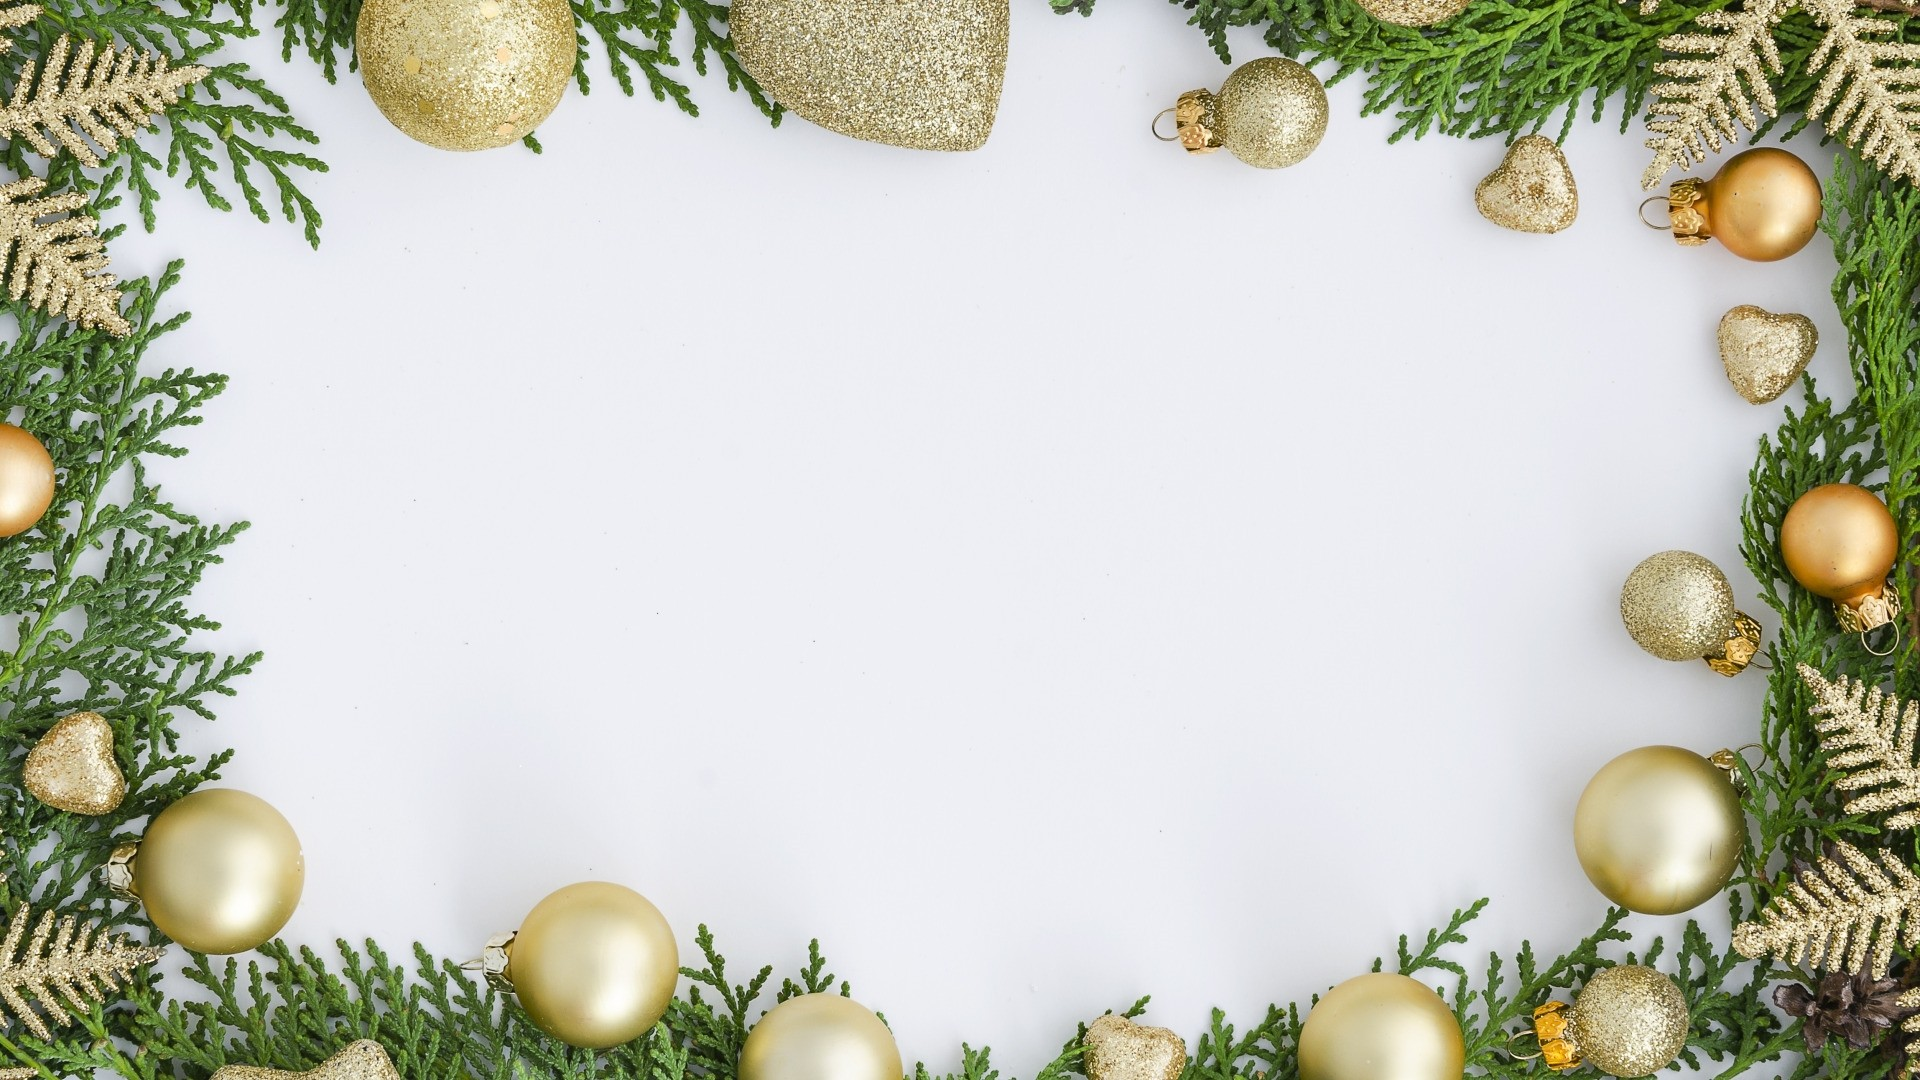 New Year Branch Frame hd wallpaper download